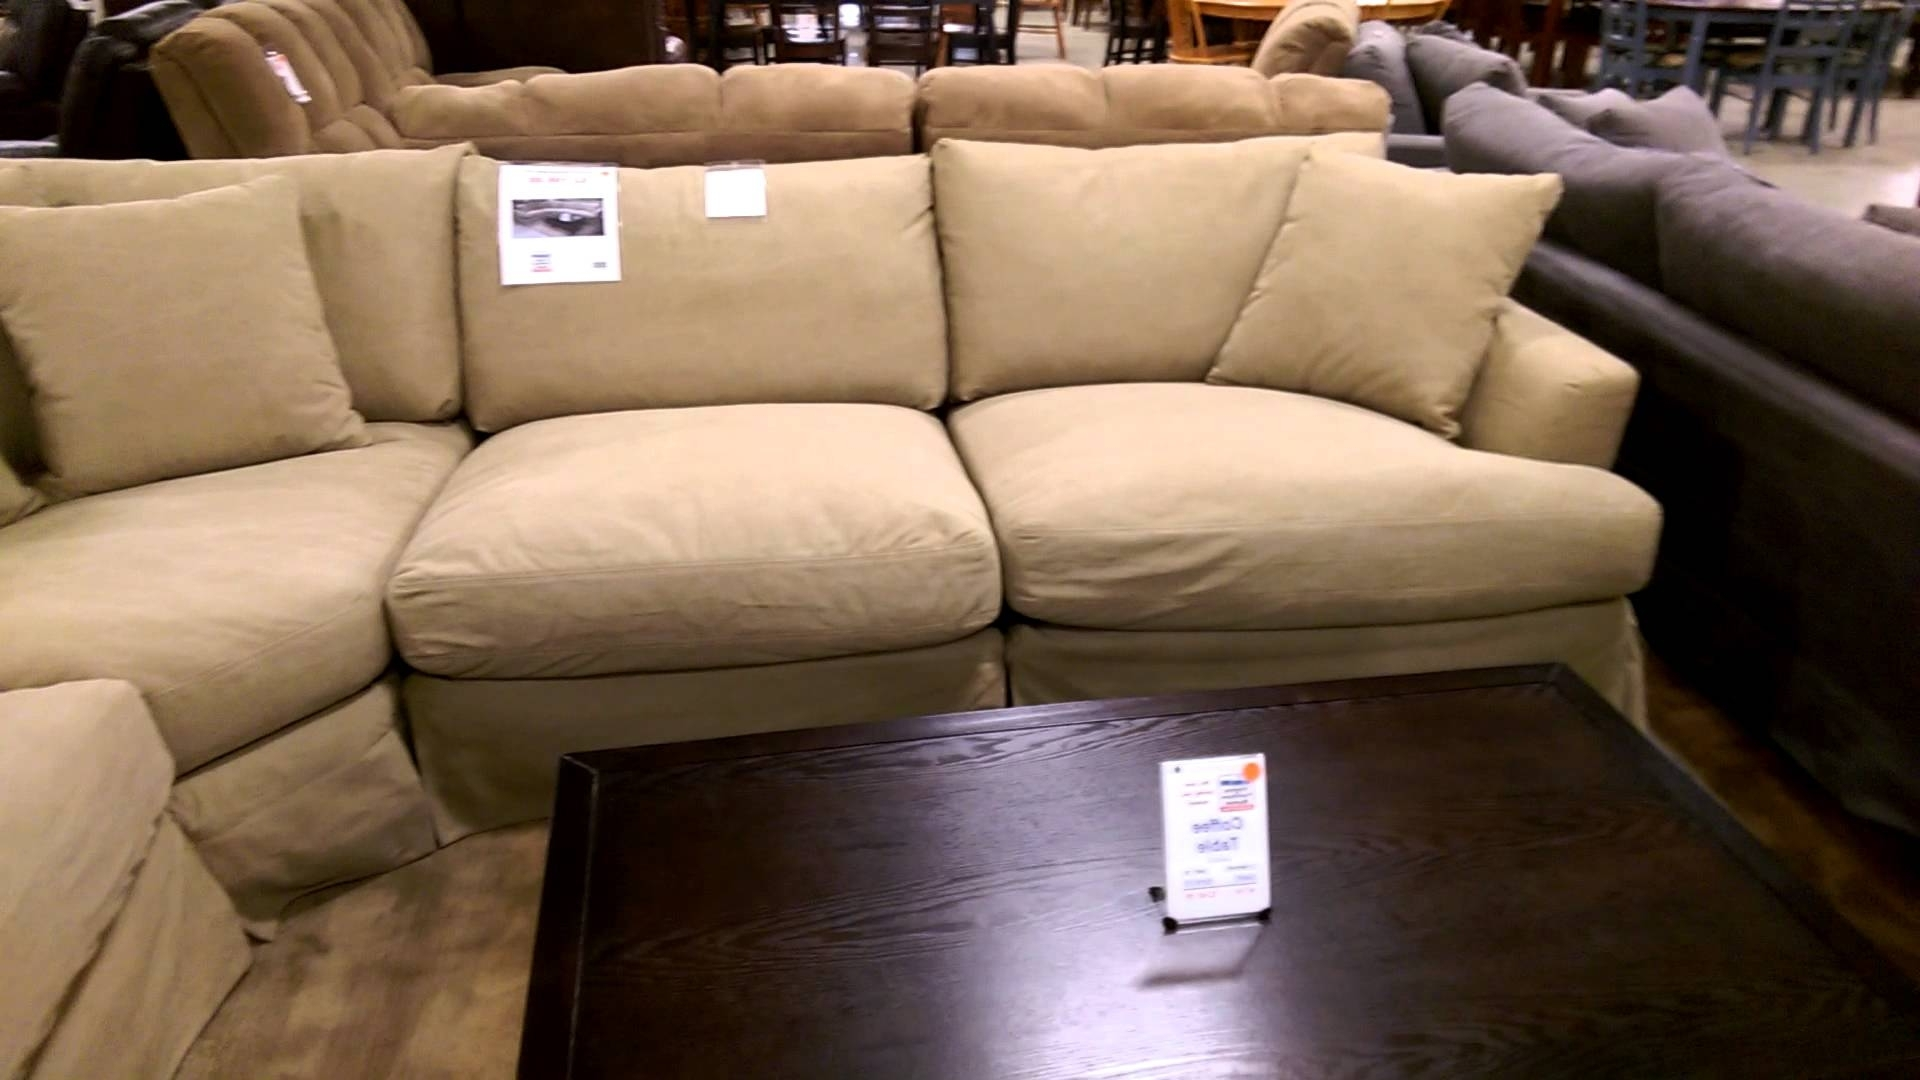 Most Recently Released Sectional Sofa Design: Deep Sectional Sofas Recliners Chaise Sale Inside Deep Sectional Sofas With Chaise (View 7 of 15)